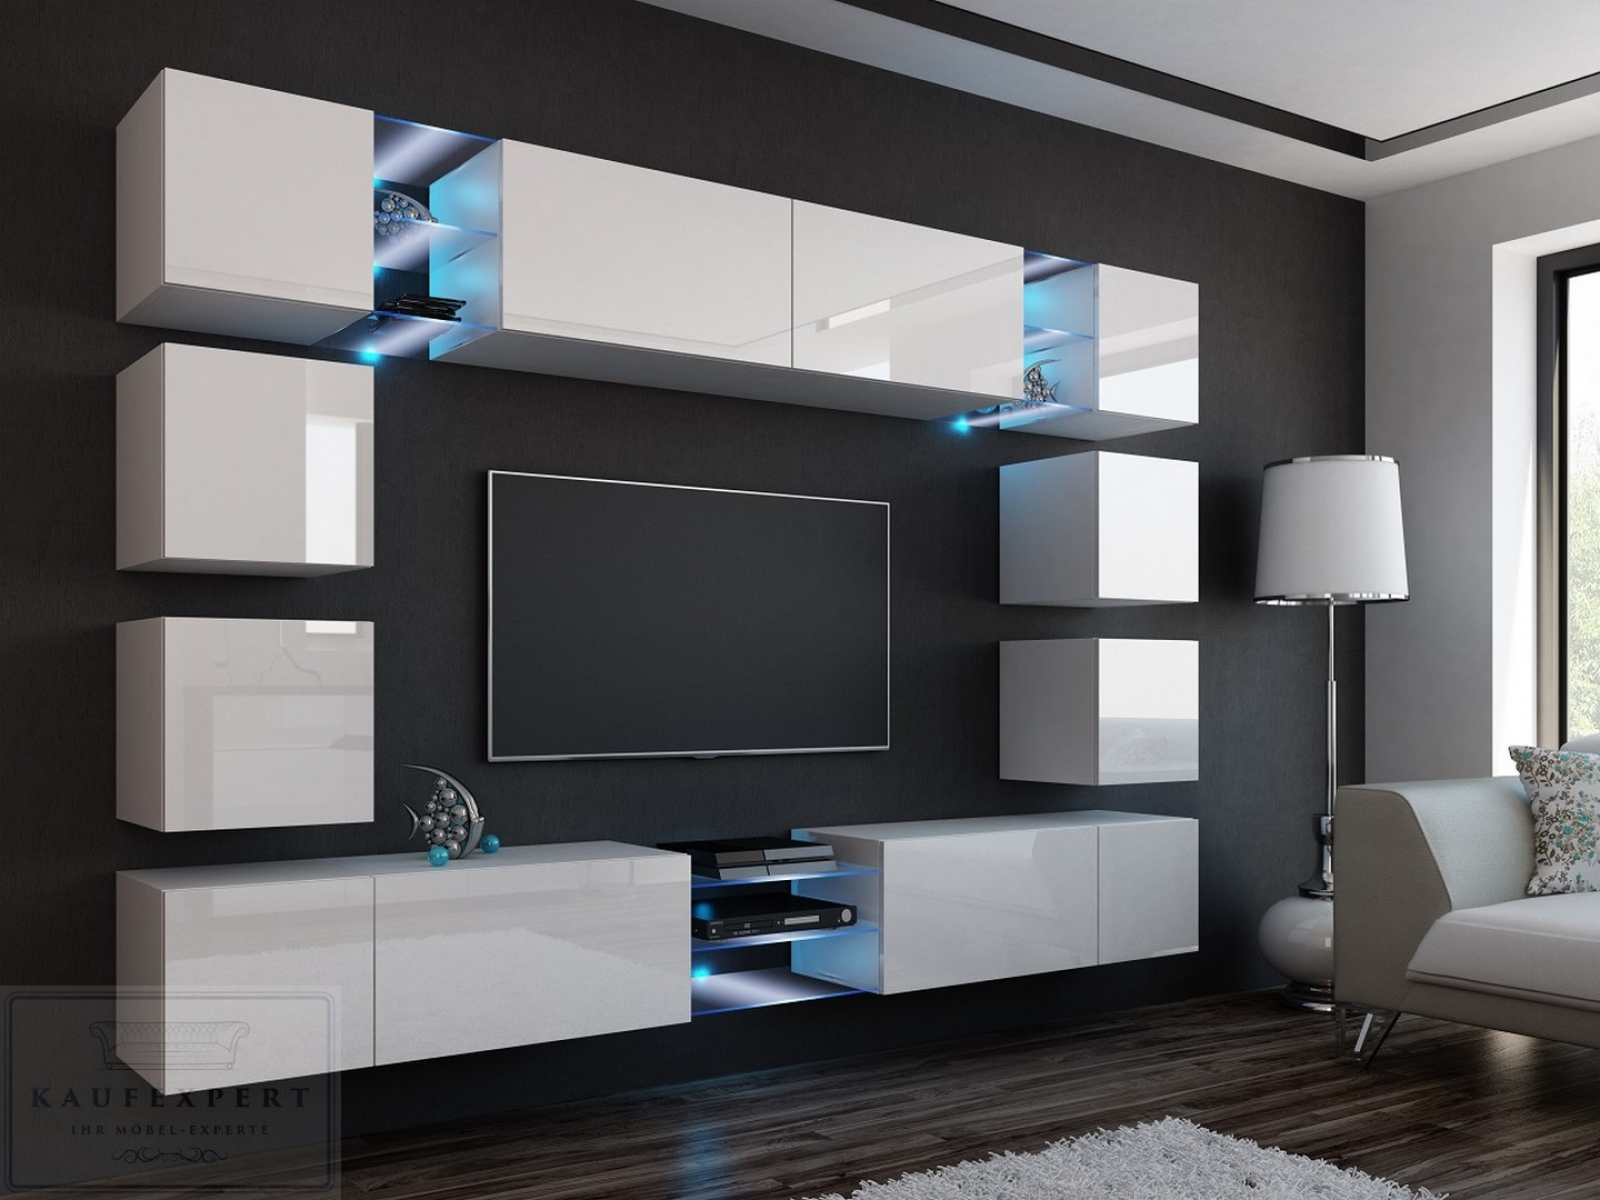 kaufexpert wohnwand edge wei hochglanz mediawand. Black Bedroom Furniture Sets. Home Design Ideas